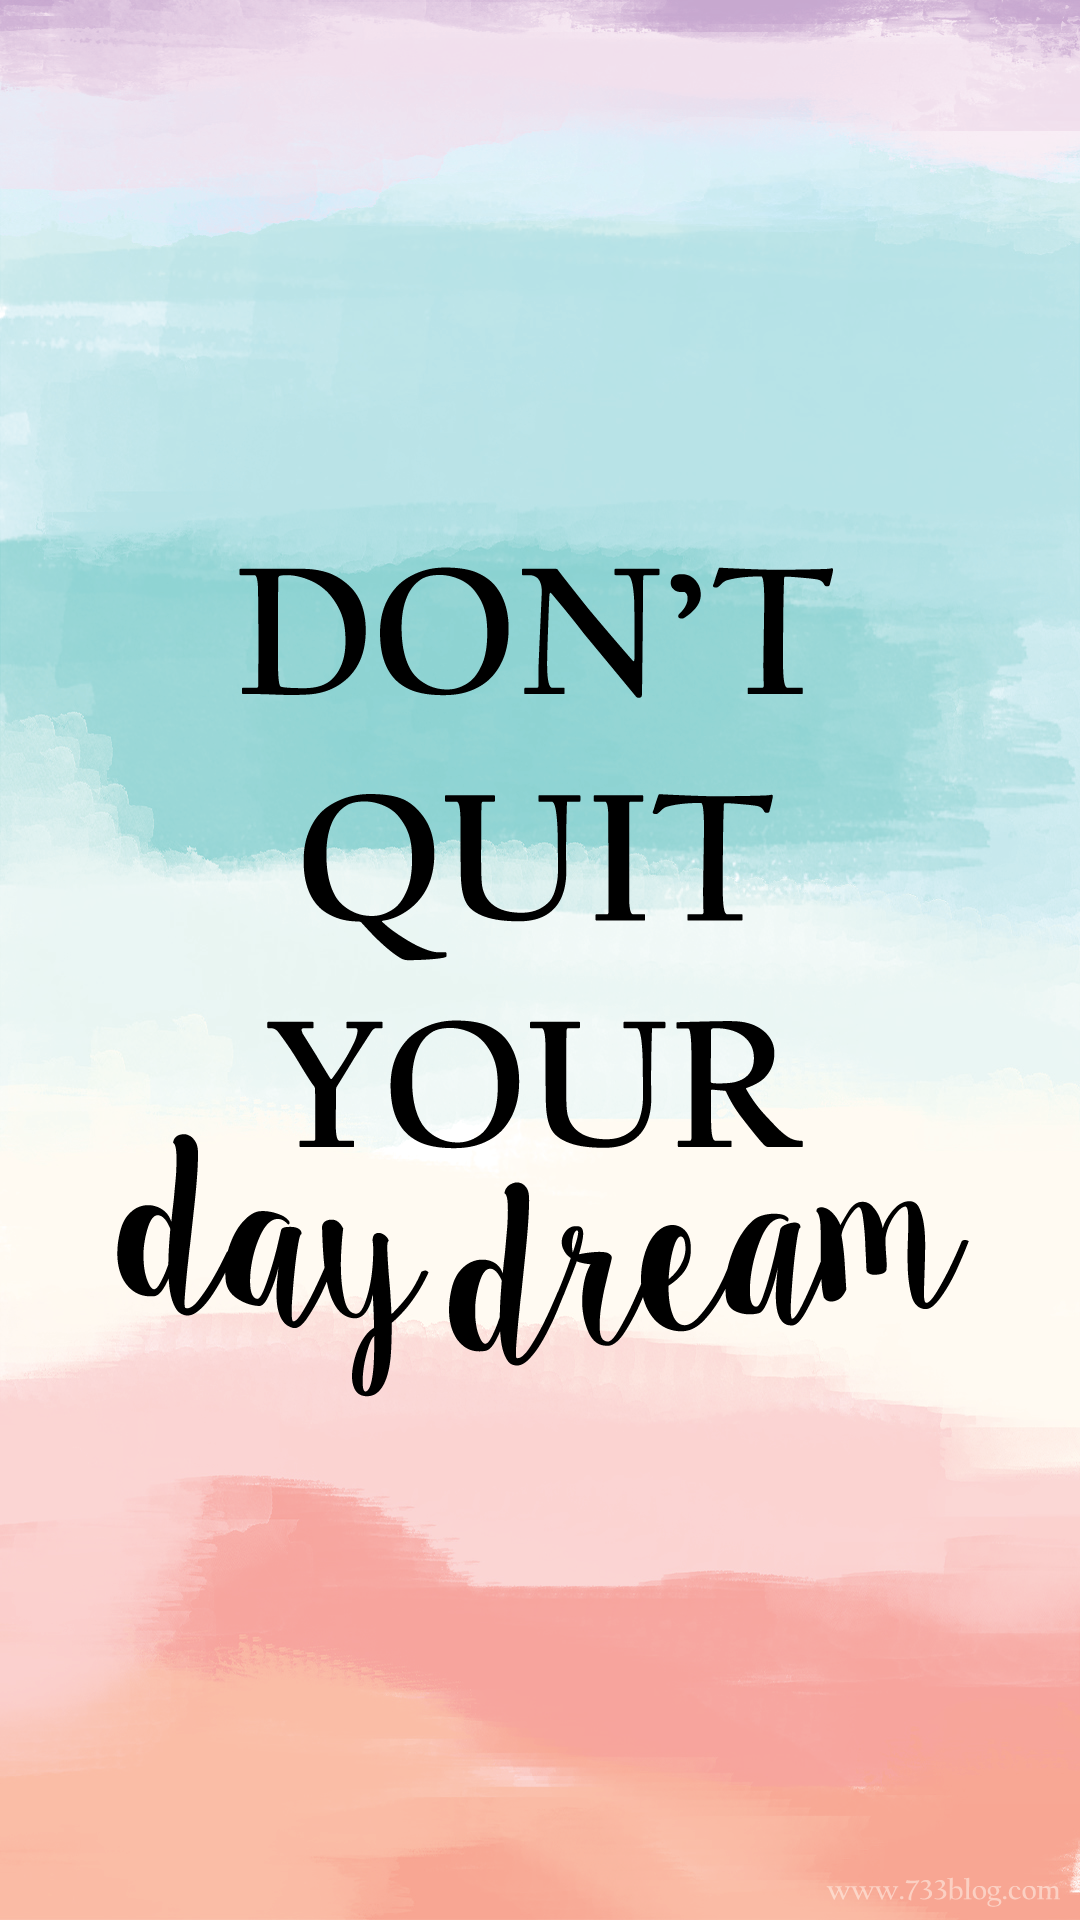 don't quit your day dream iphone wallpaper | pinterest | wallpaper